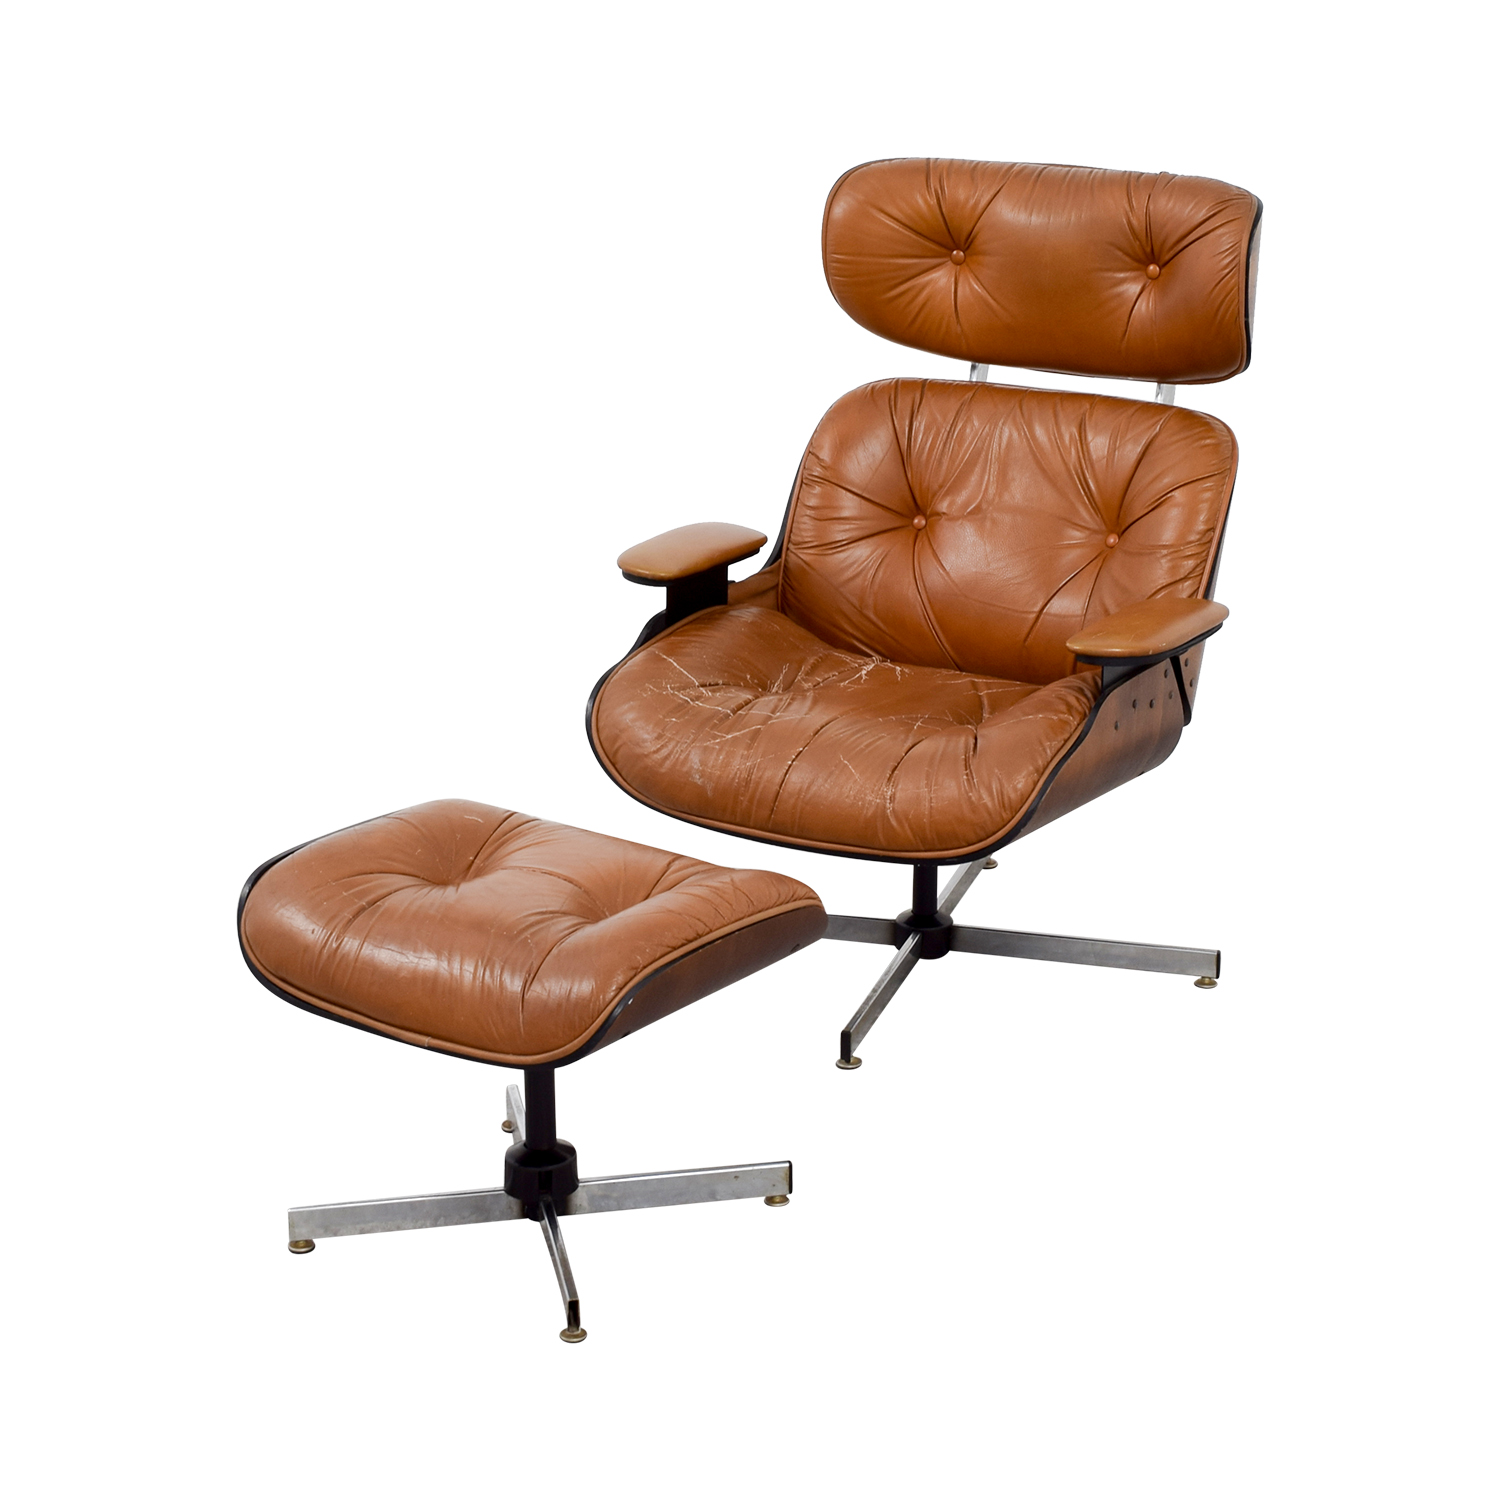 69 OFF  Eames Replica Leather Chair with Ottoman  Chairs